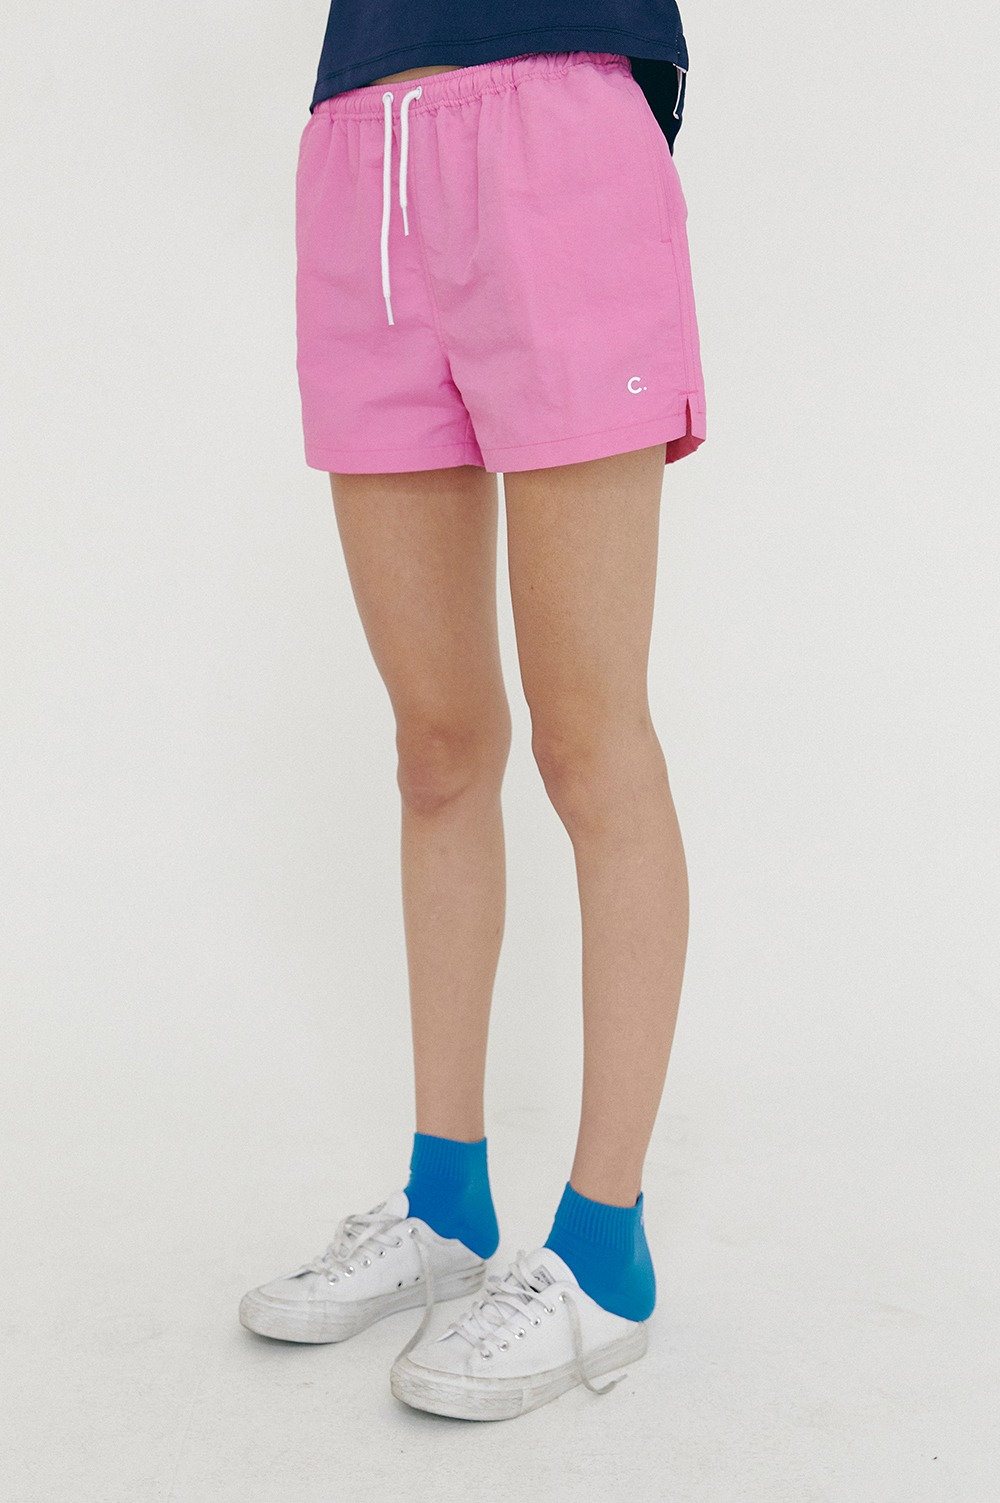 [SS21 CLOVE] New Summer Shorts_Women Pink